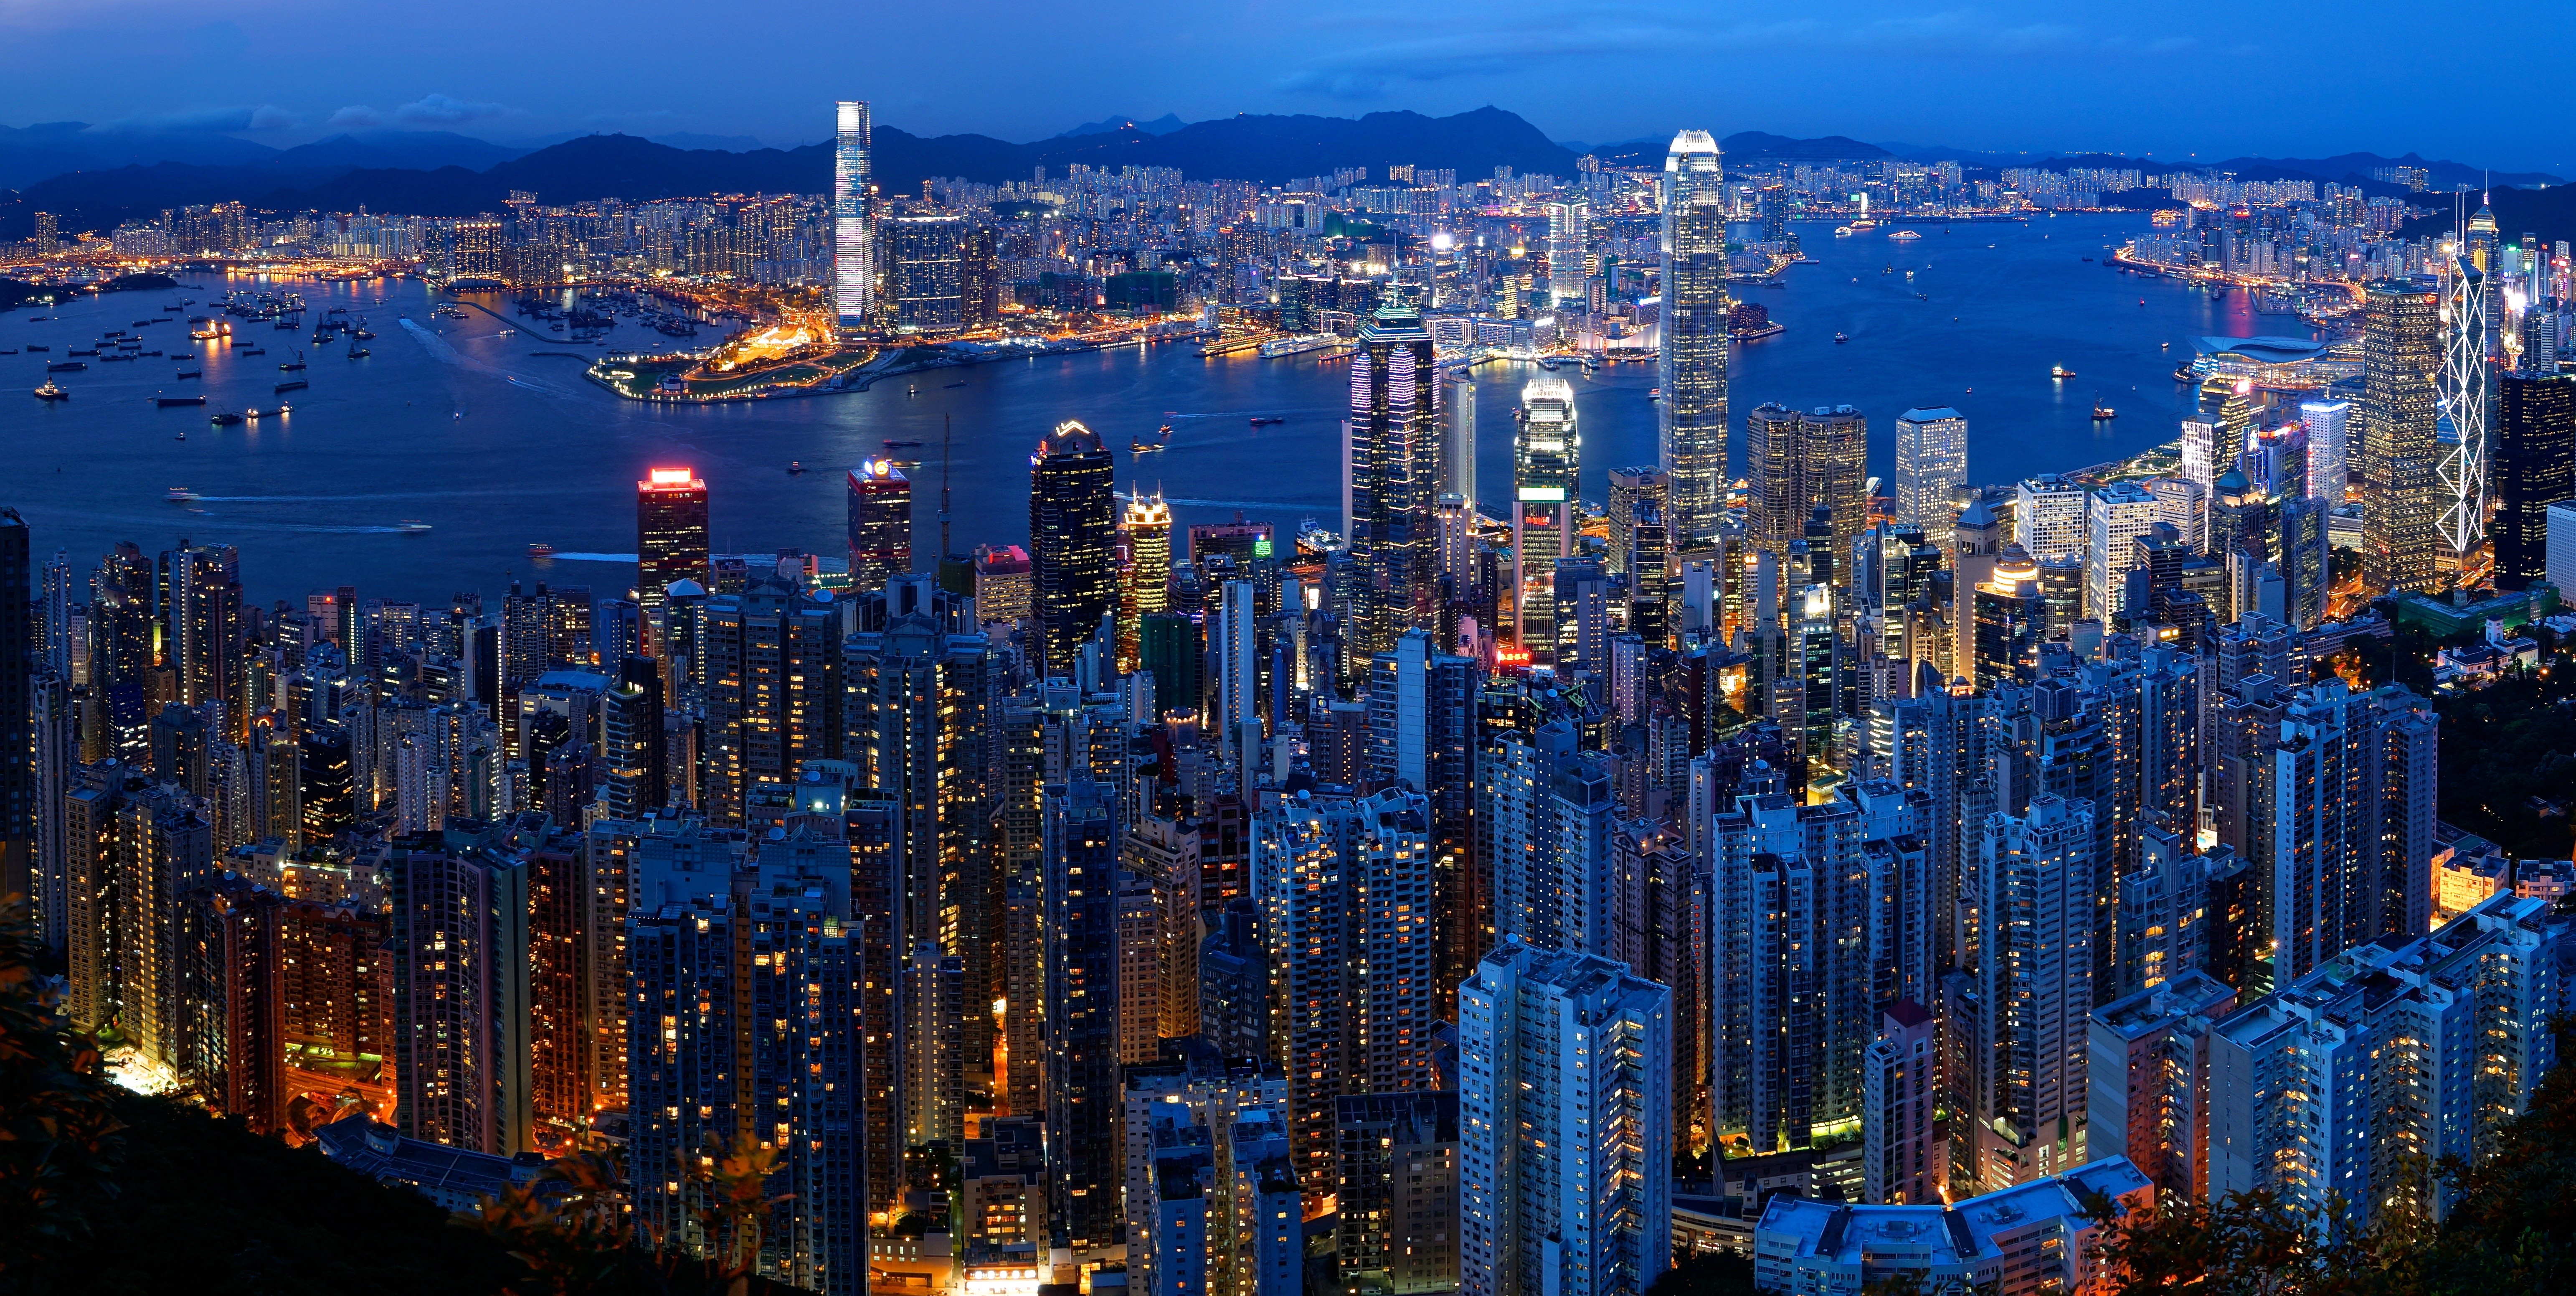 Skyline And Victoria Harbour At Dusk C View From Victoria Peak C Hong Kong C China E A E B Af Ef Bc C E B Ad E B Bd